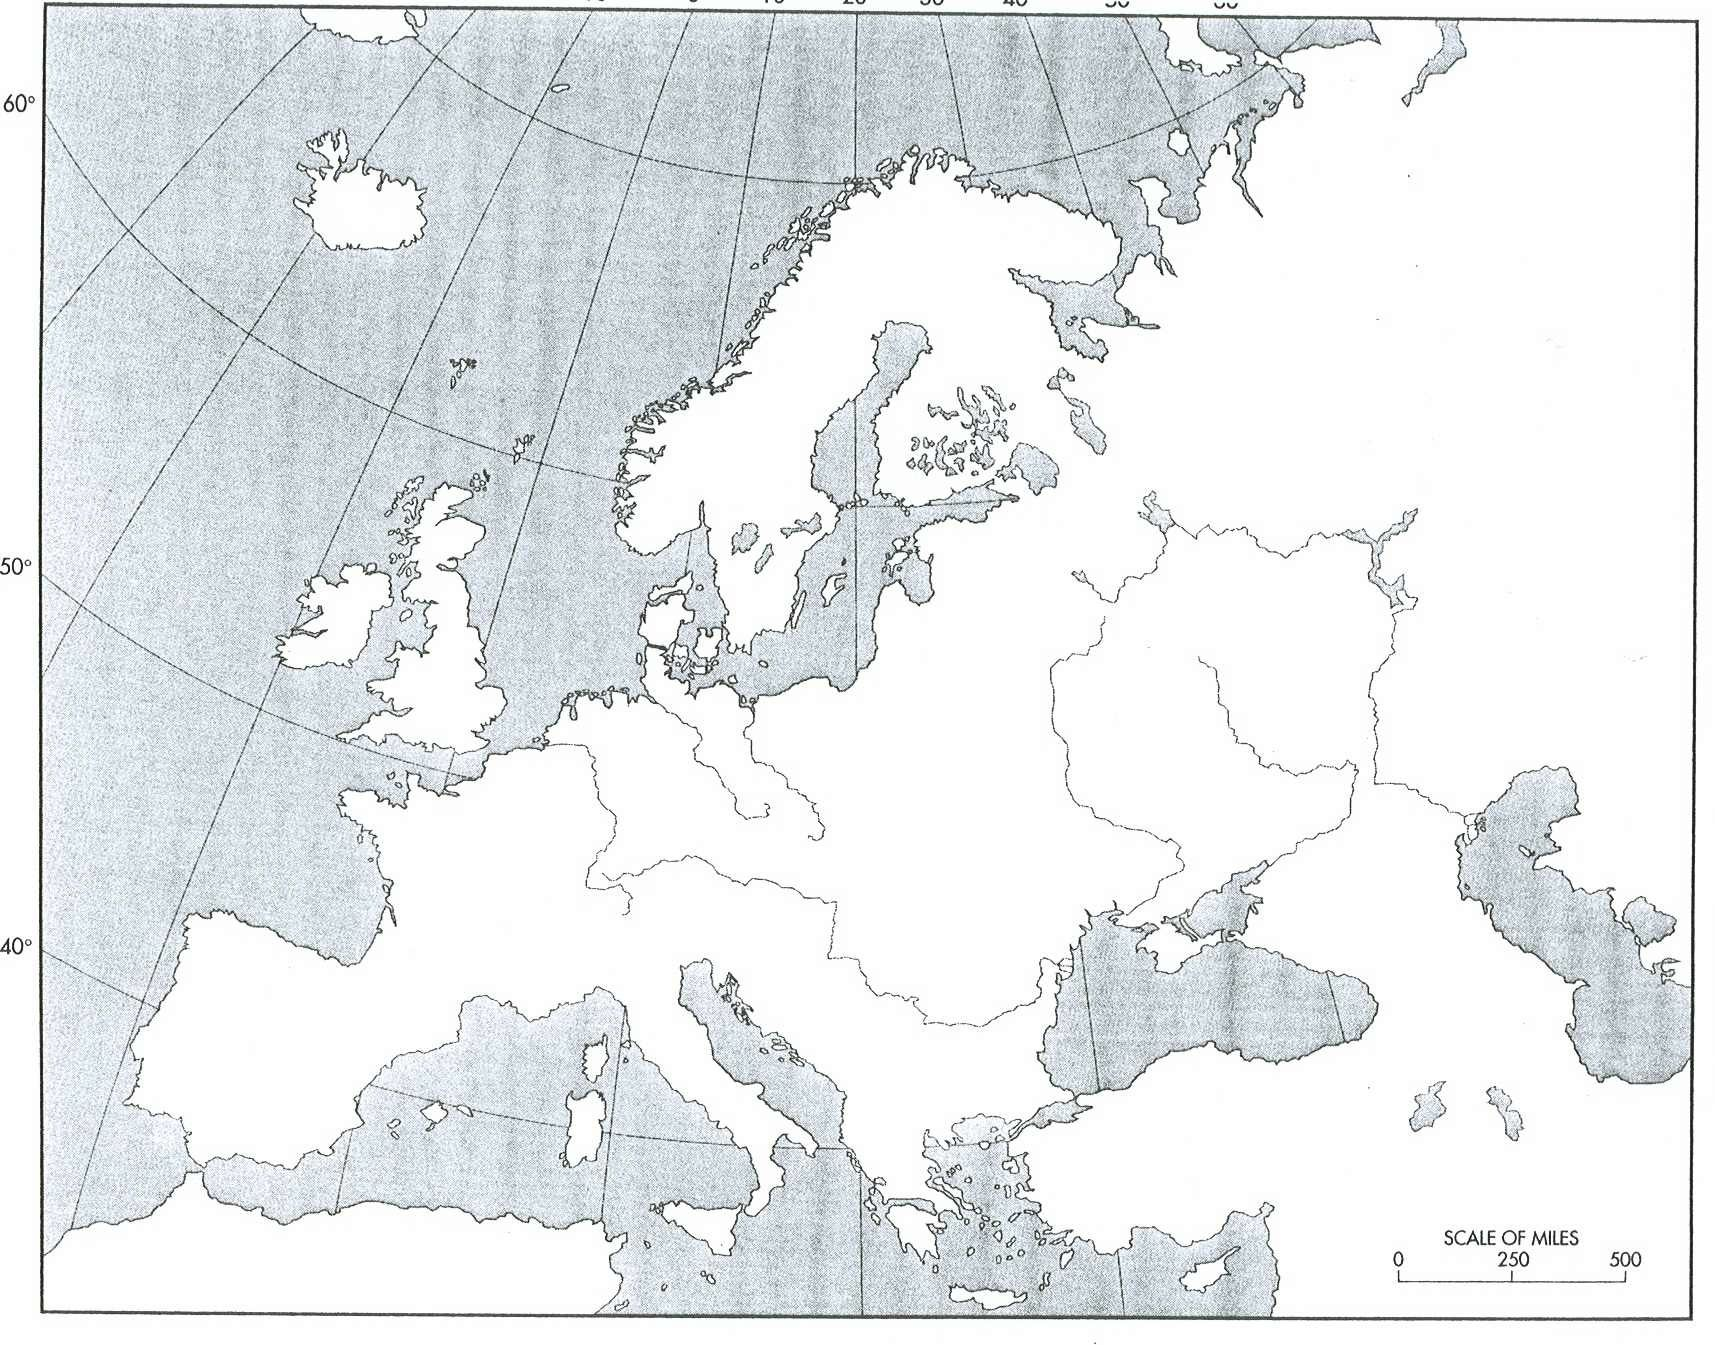 World war europe map blank miscellaneous pinterest outlines world war europe map blank gumiabroncs Images